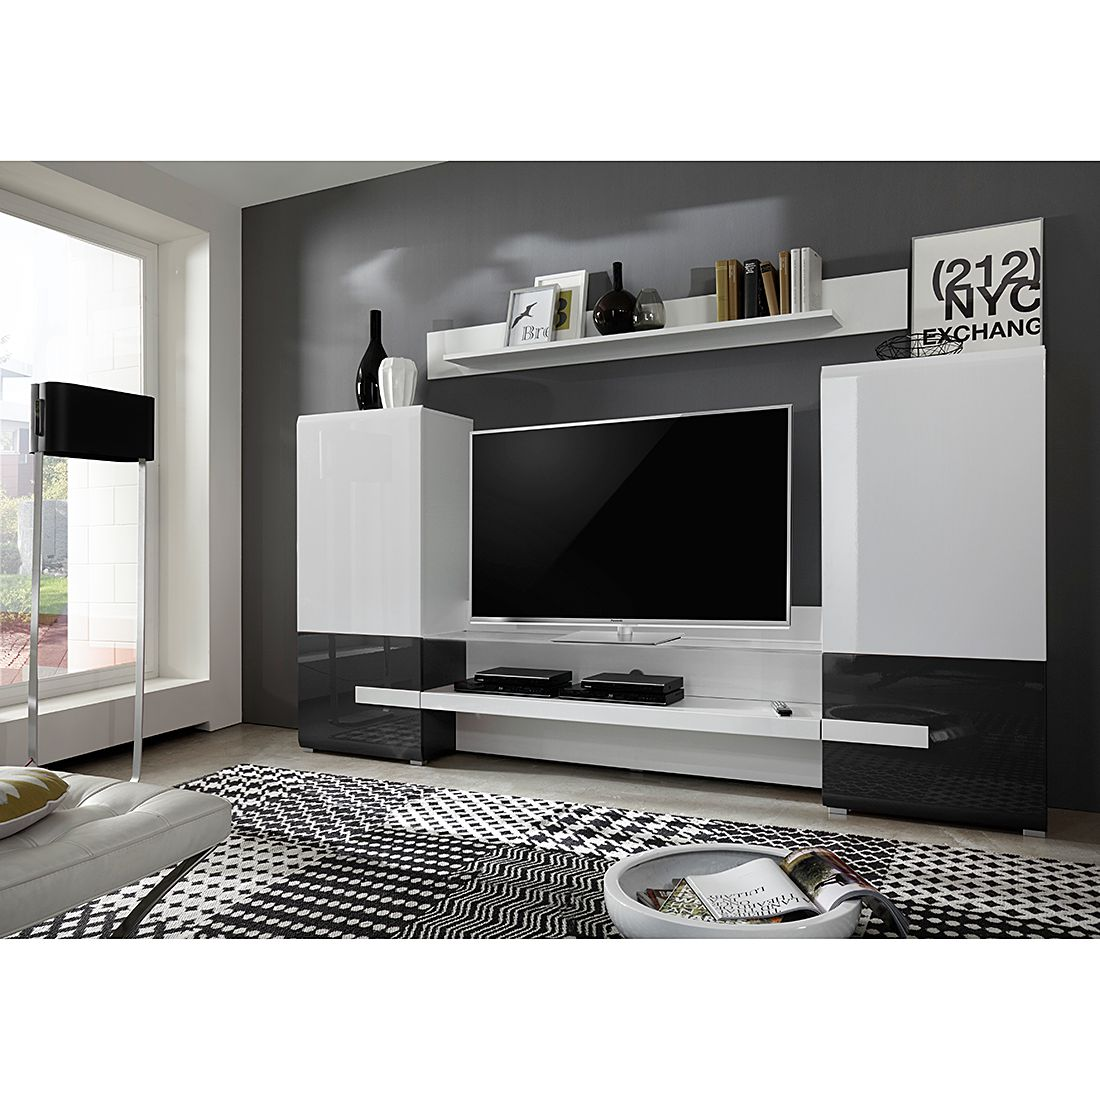 wohnw nde online kaufen. Black Bedroom Furniture Sets. Home Design Ideas